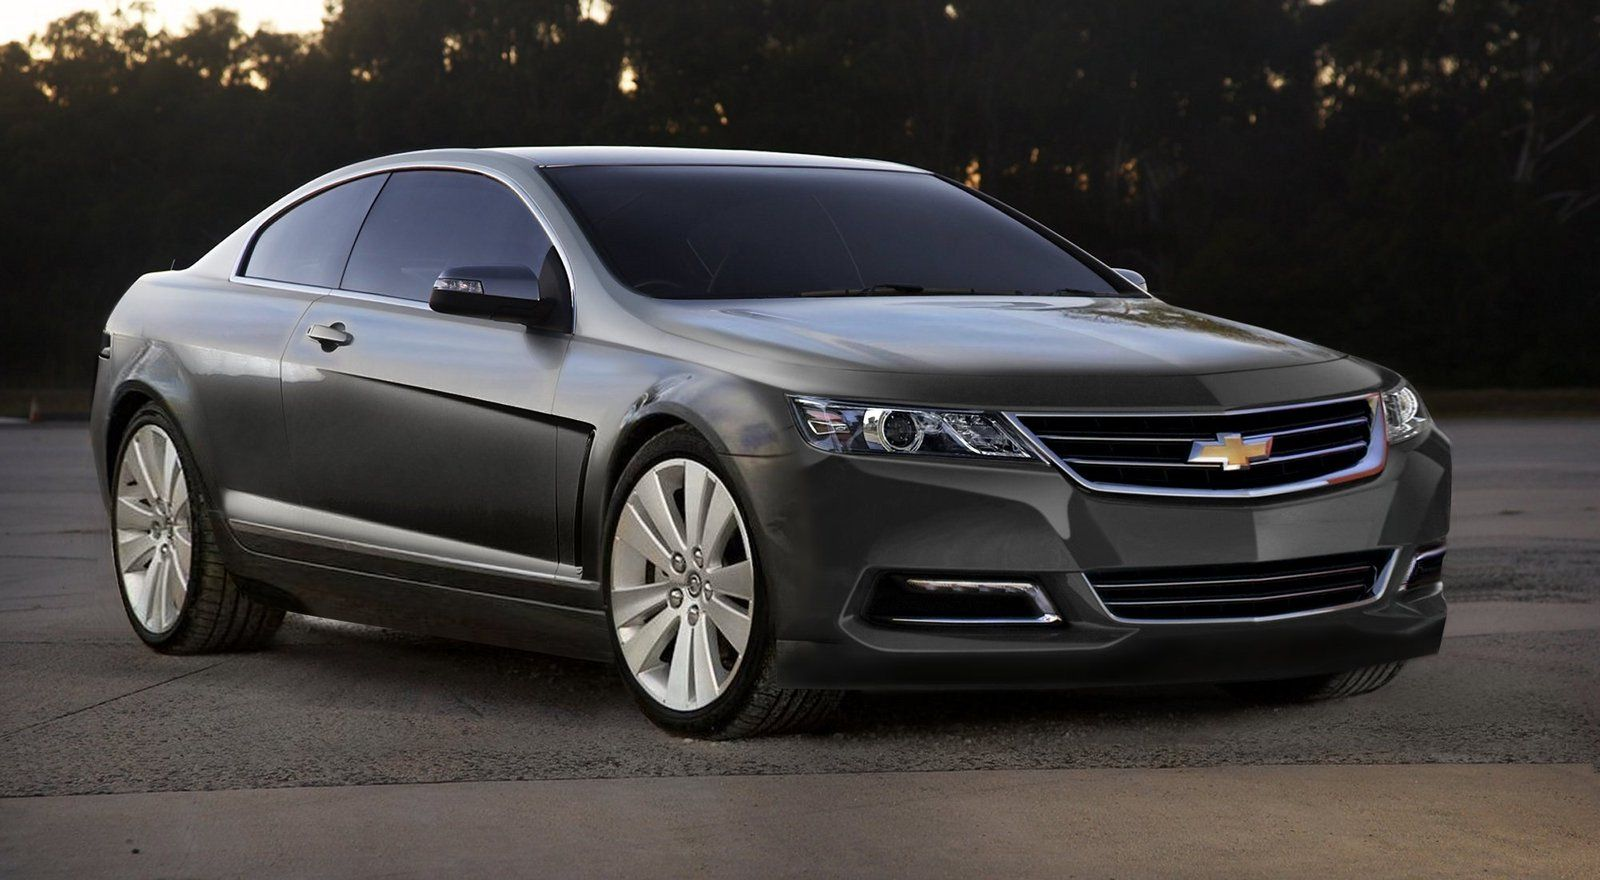 2016 chevrolet impala limited chevrolet impala impalas and chevrolet